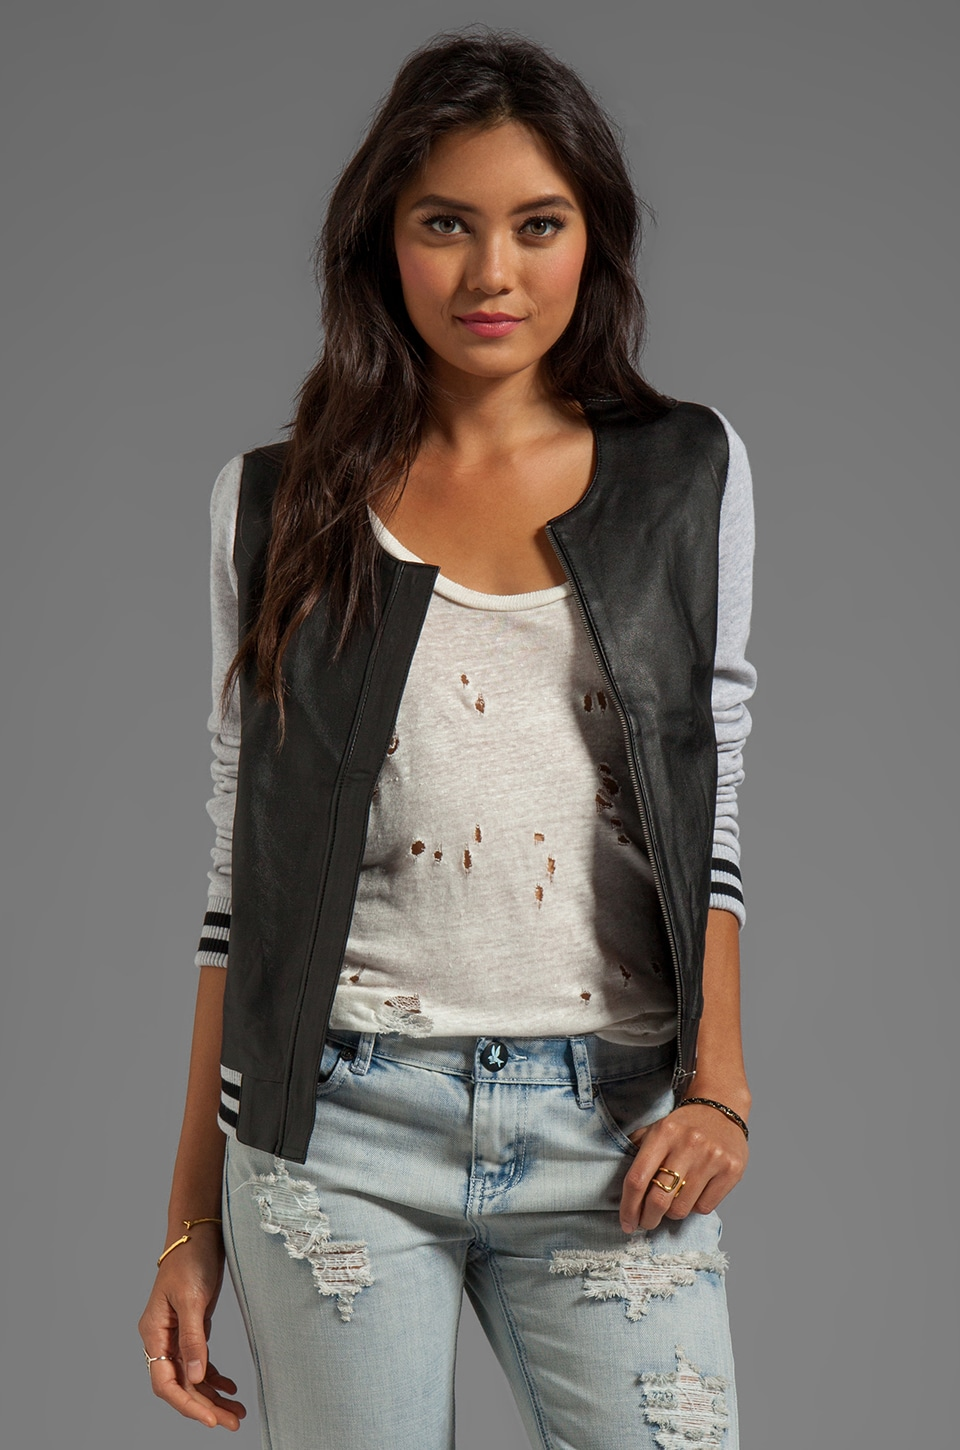 TOWNSEN Leather Bomber Jacket in Black/Heather Grey